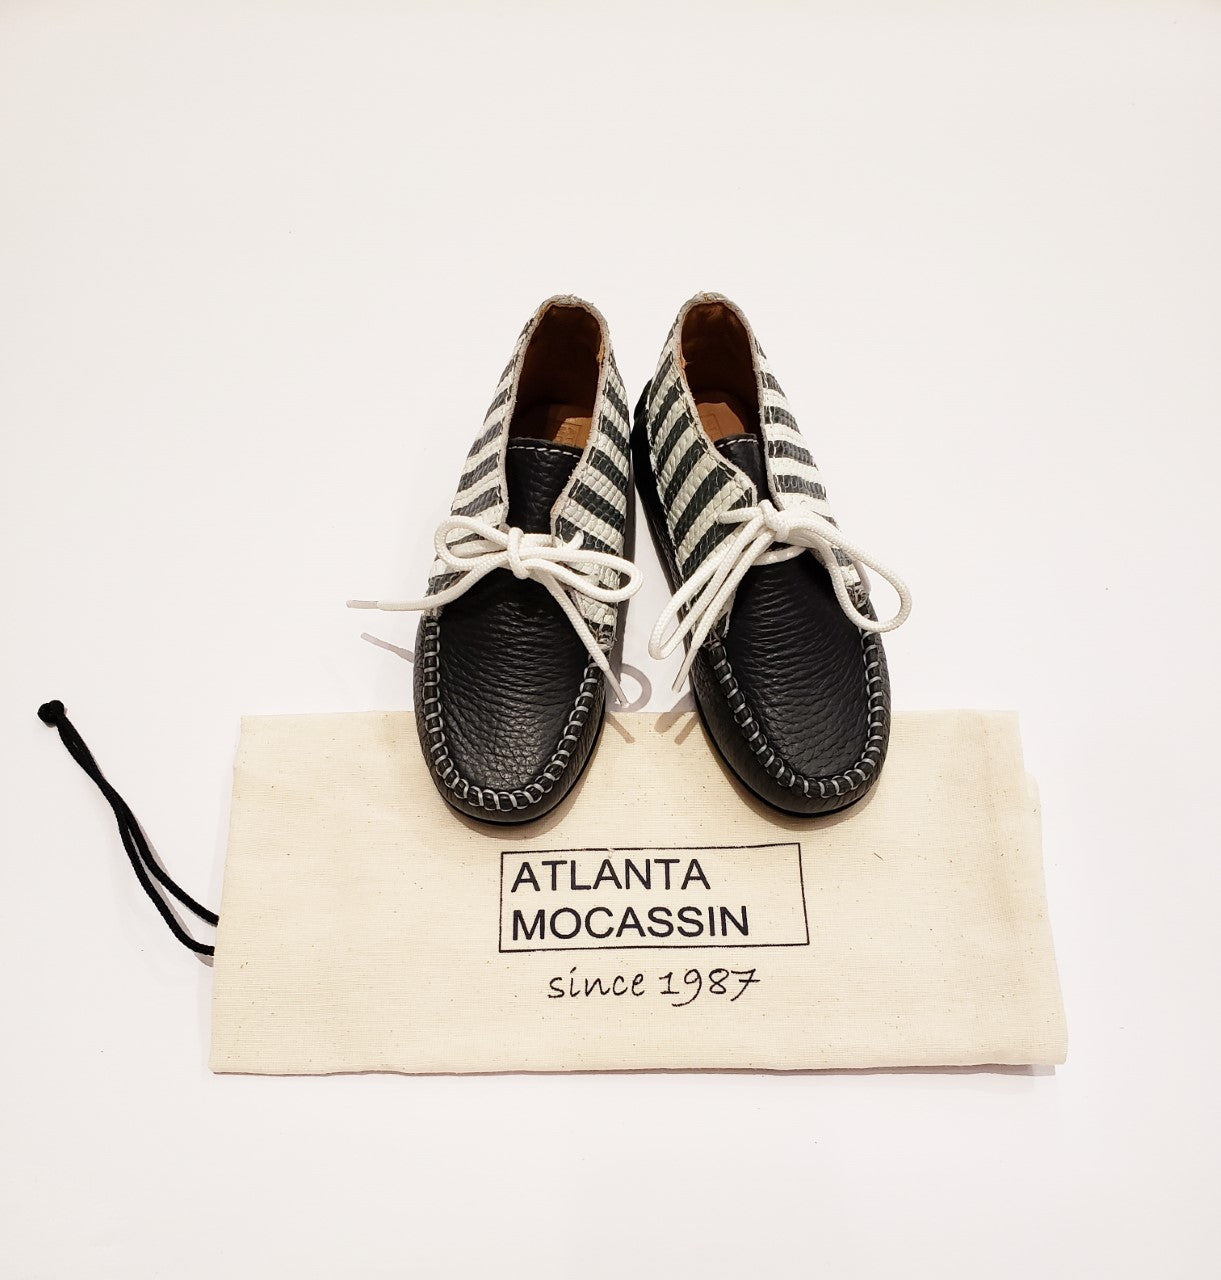 Atlanta Mocassin Navy / White High Top Shoes